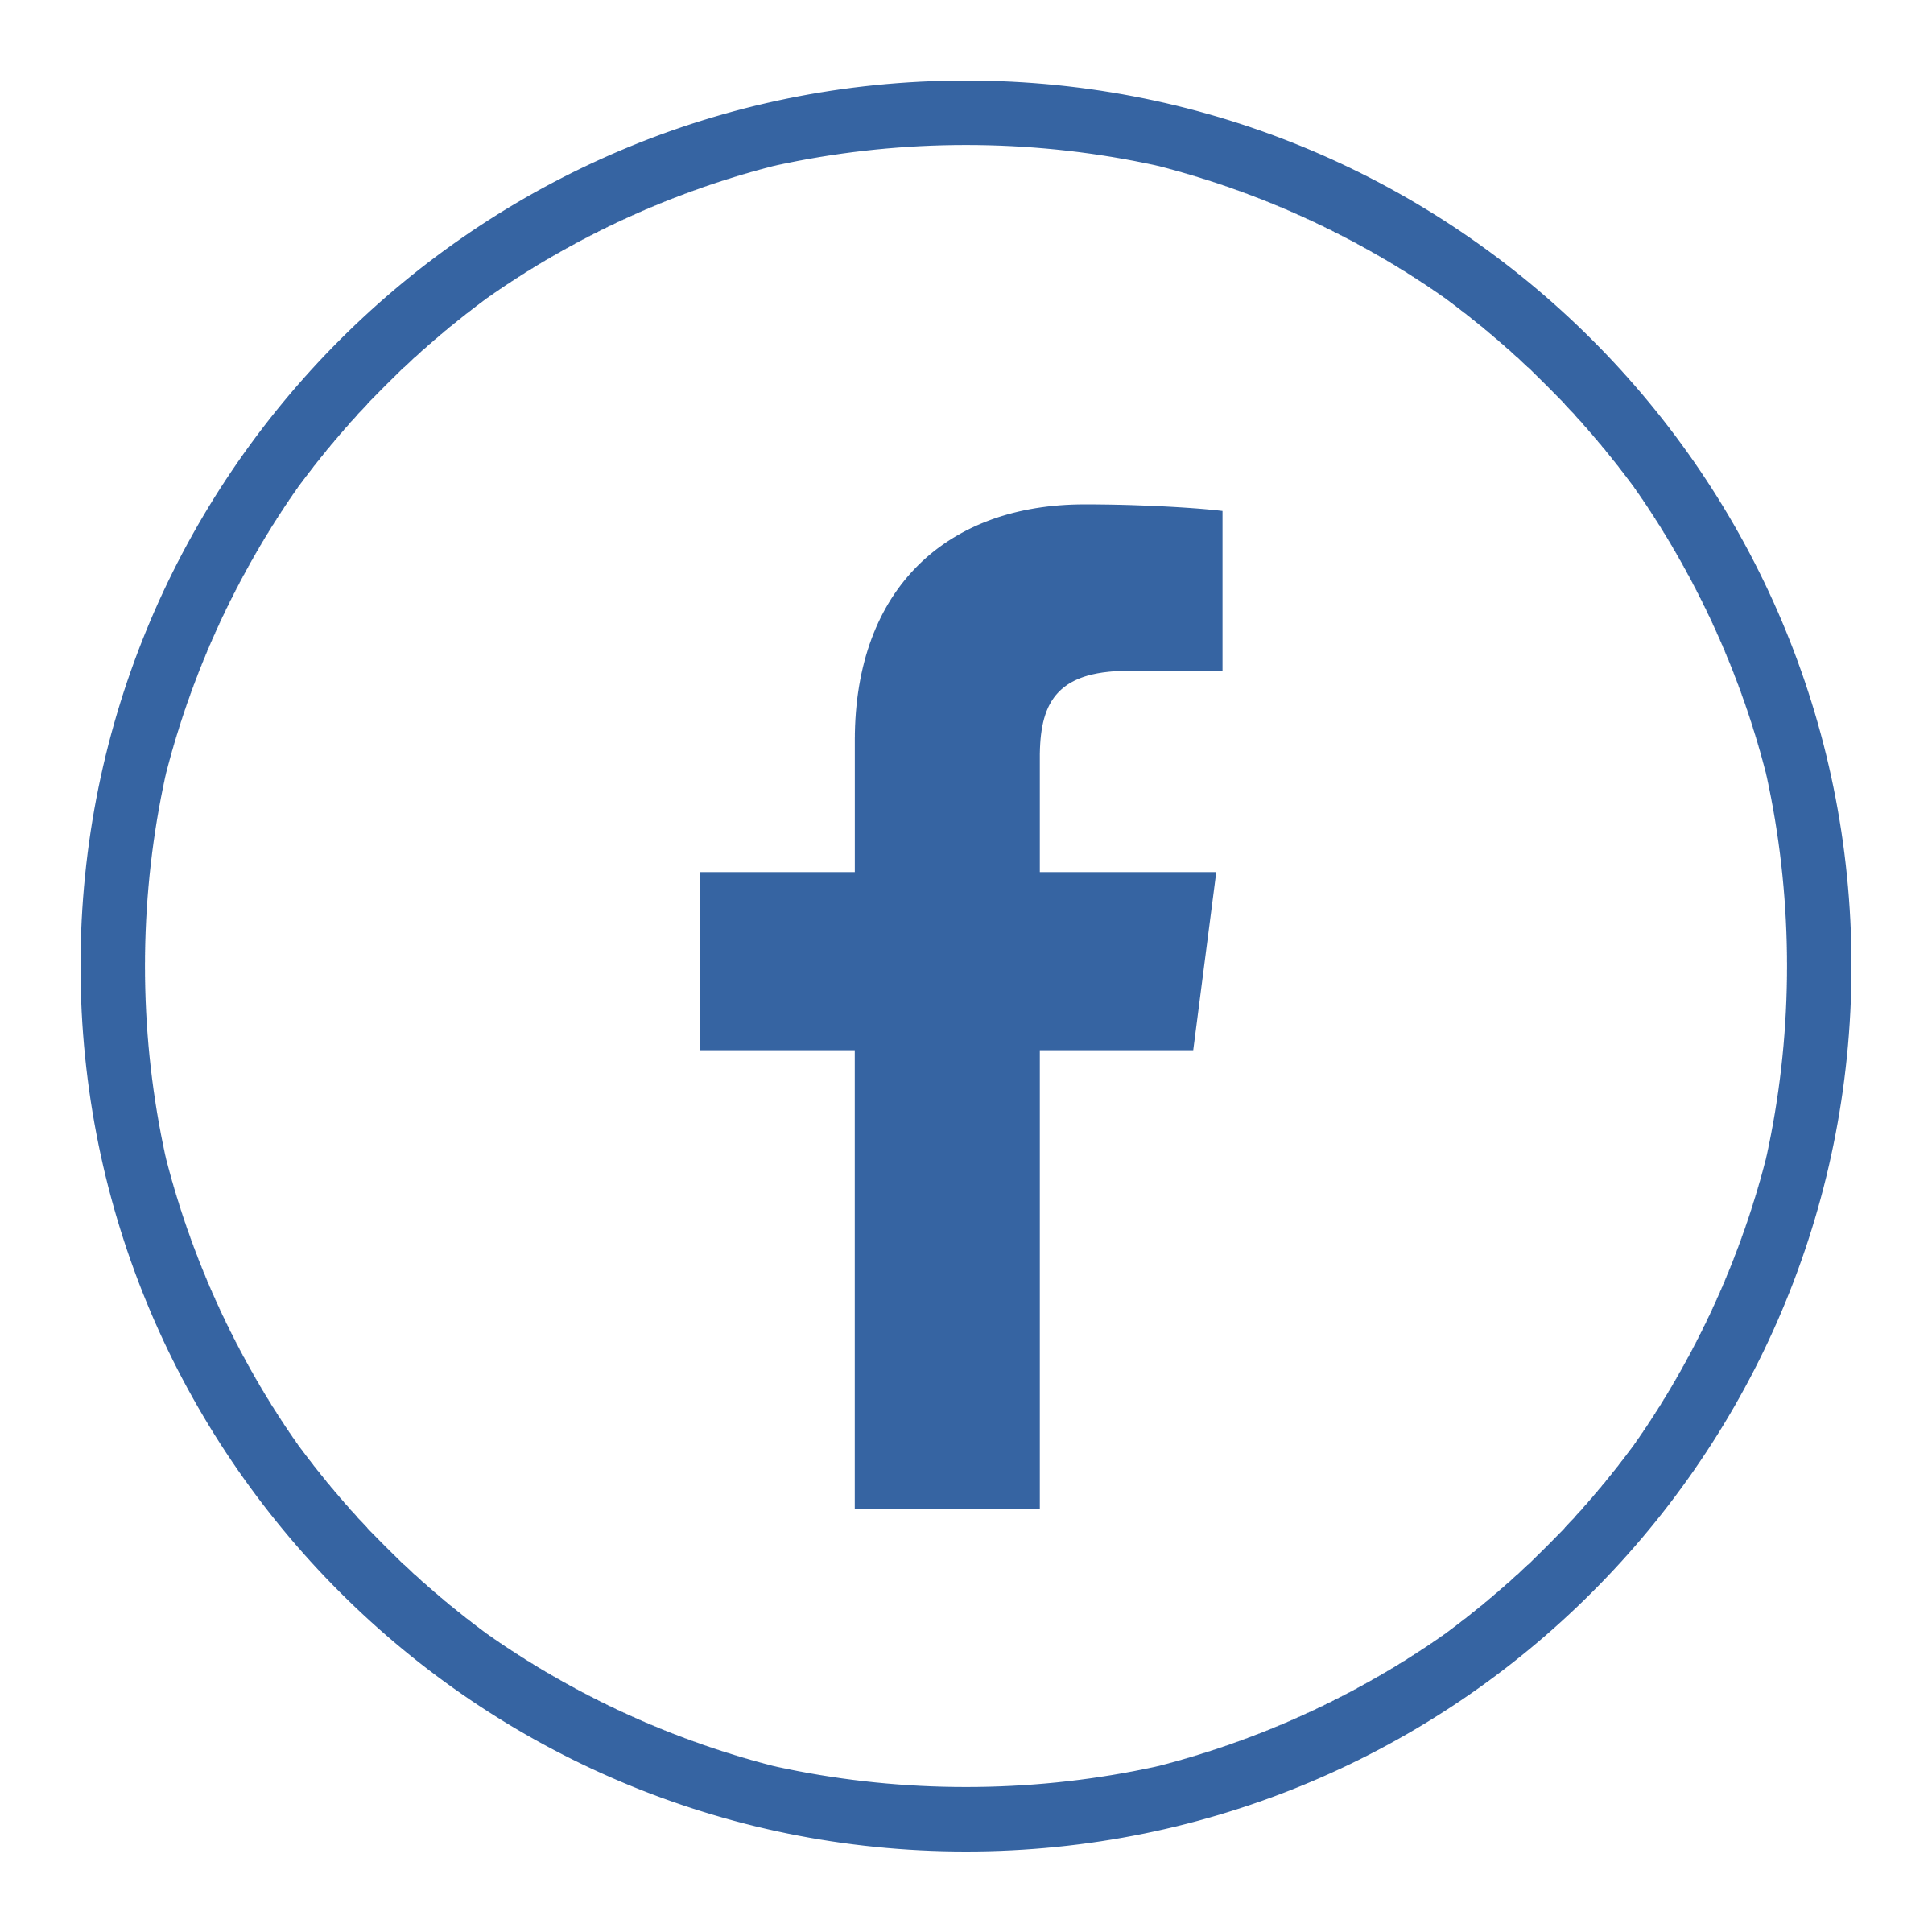 Transparent Blue Drawing Circle, Letter F Icon For Facebook #32215